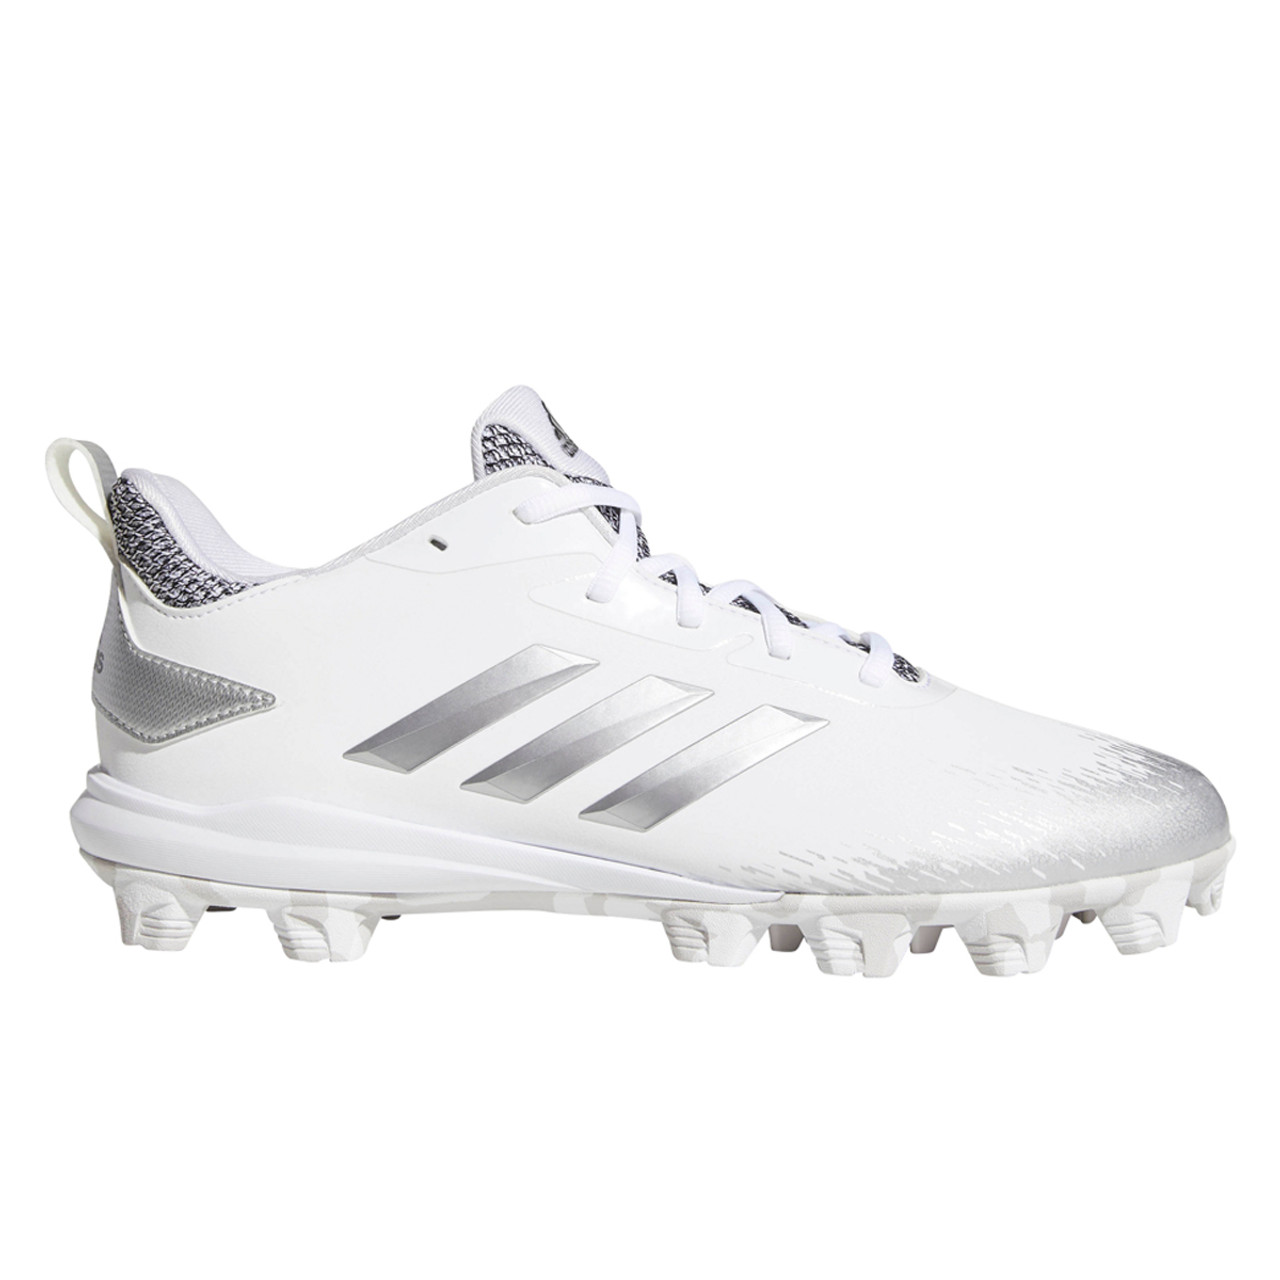 online store 0a8bb 78e2d Adidas Adizero Afterburner V MD Mens Baseball Cleats CG5236 ...